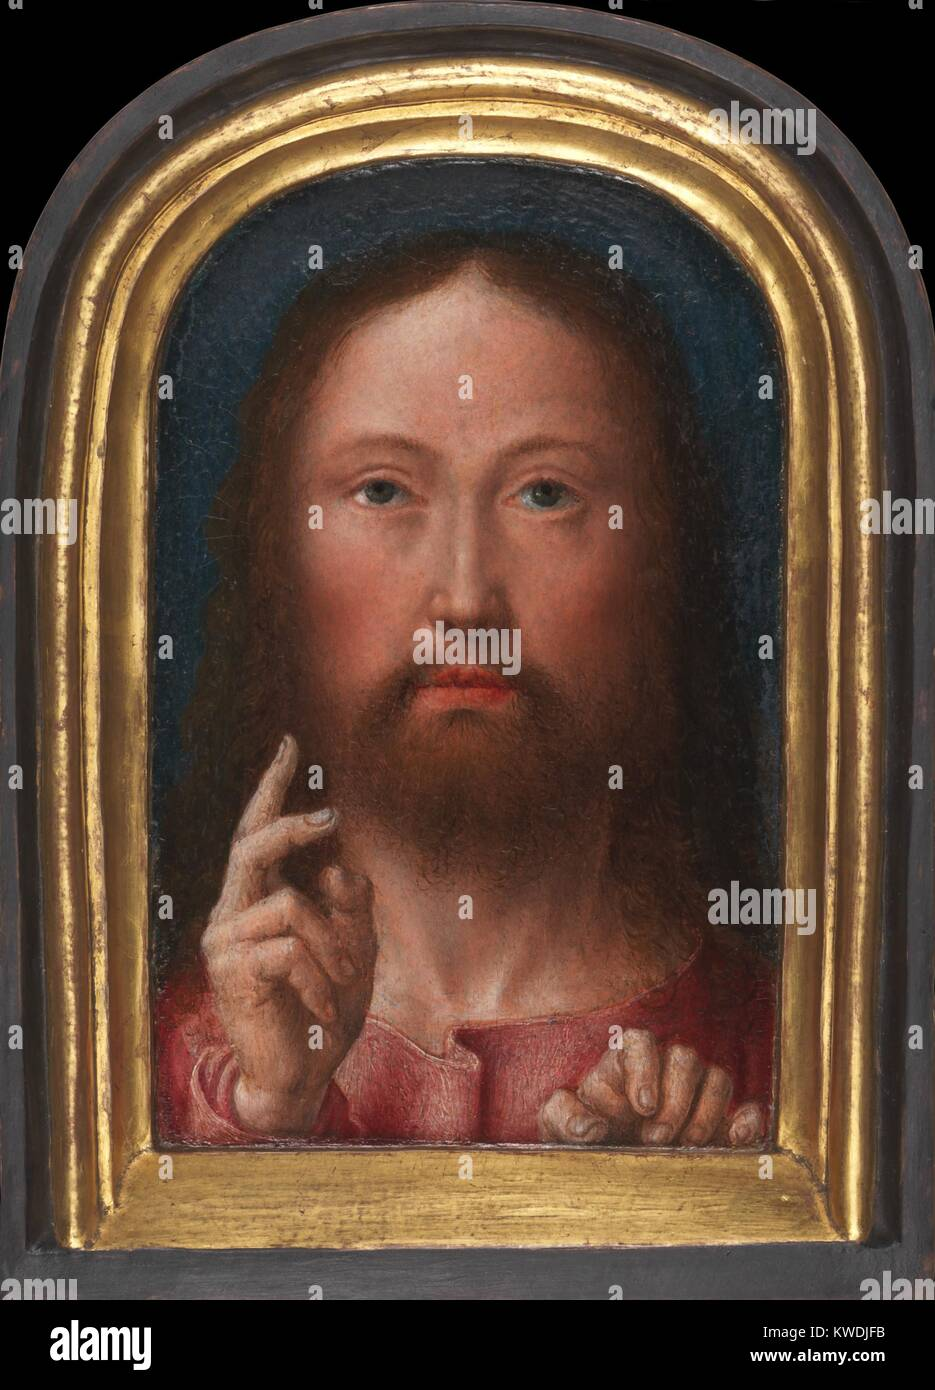 CHRIST BLESSING, by Gerard David, 1500-05, Netherlandish, Northern Renaissance oil painting. The painted surface - Stock Image